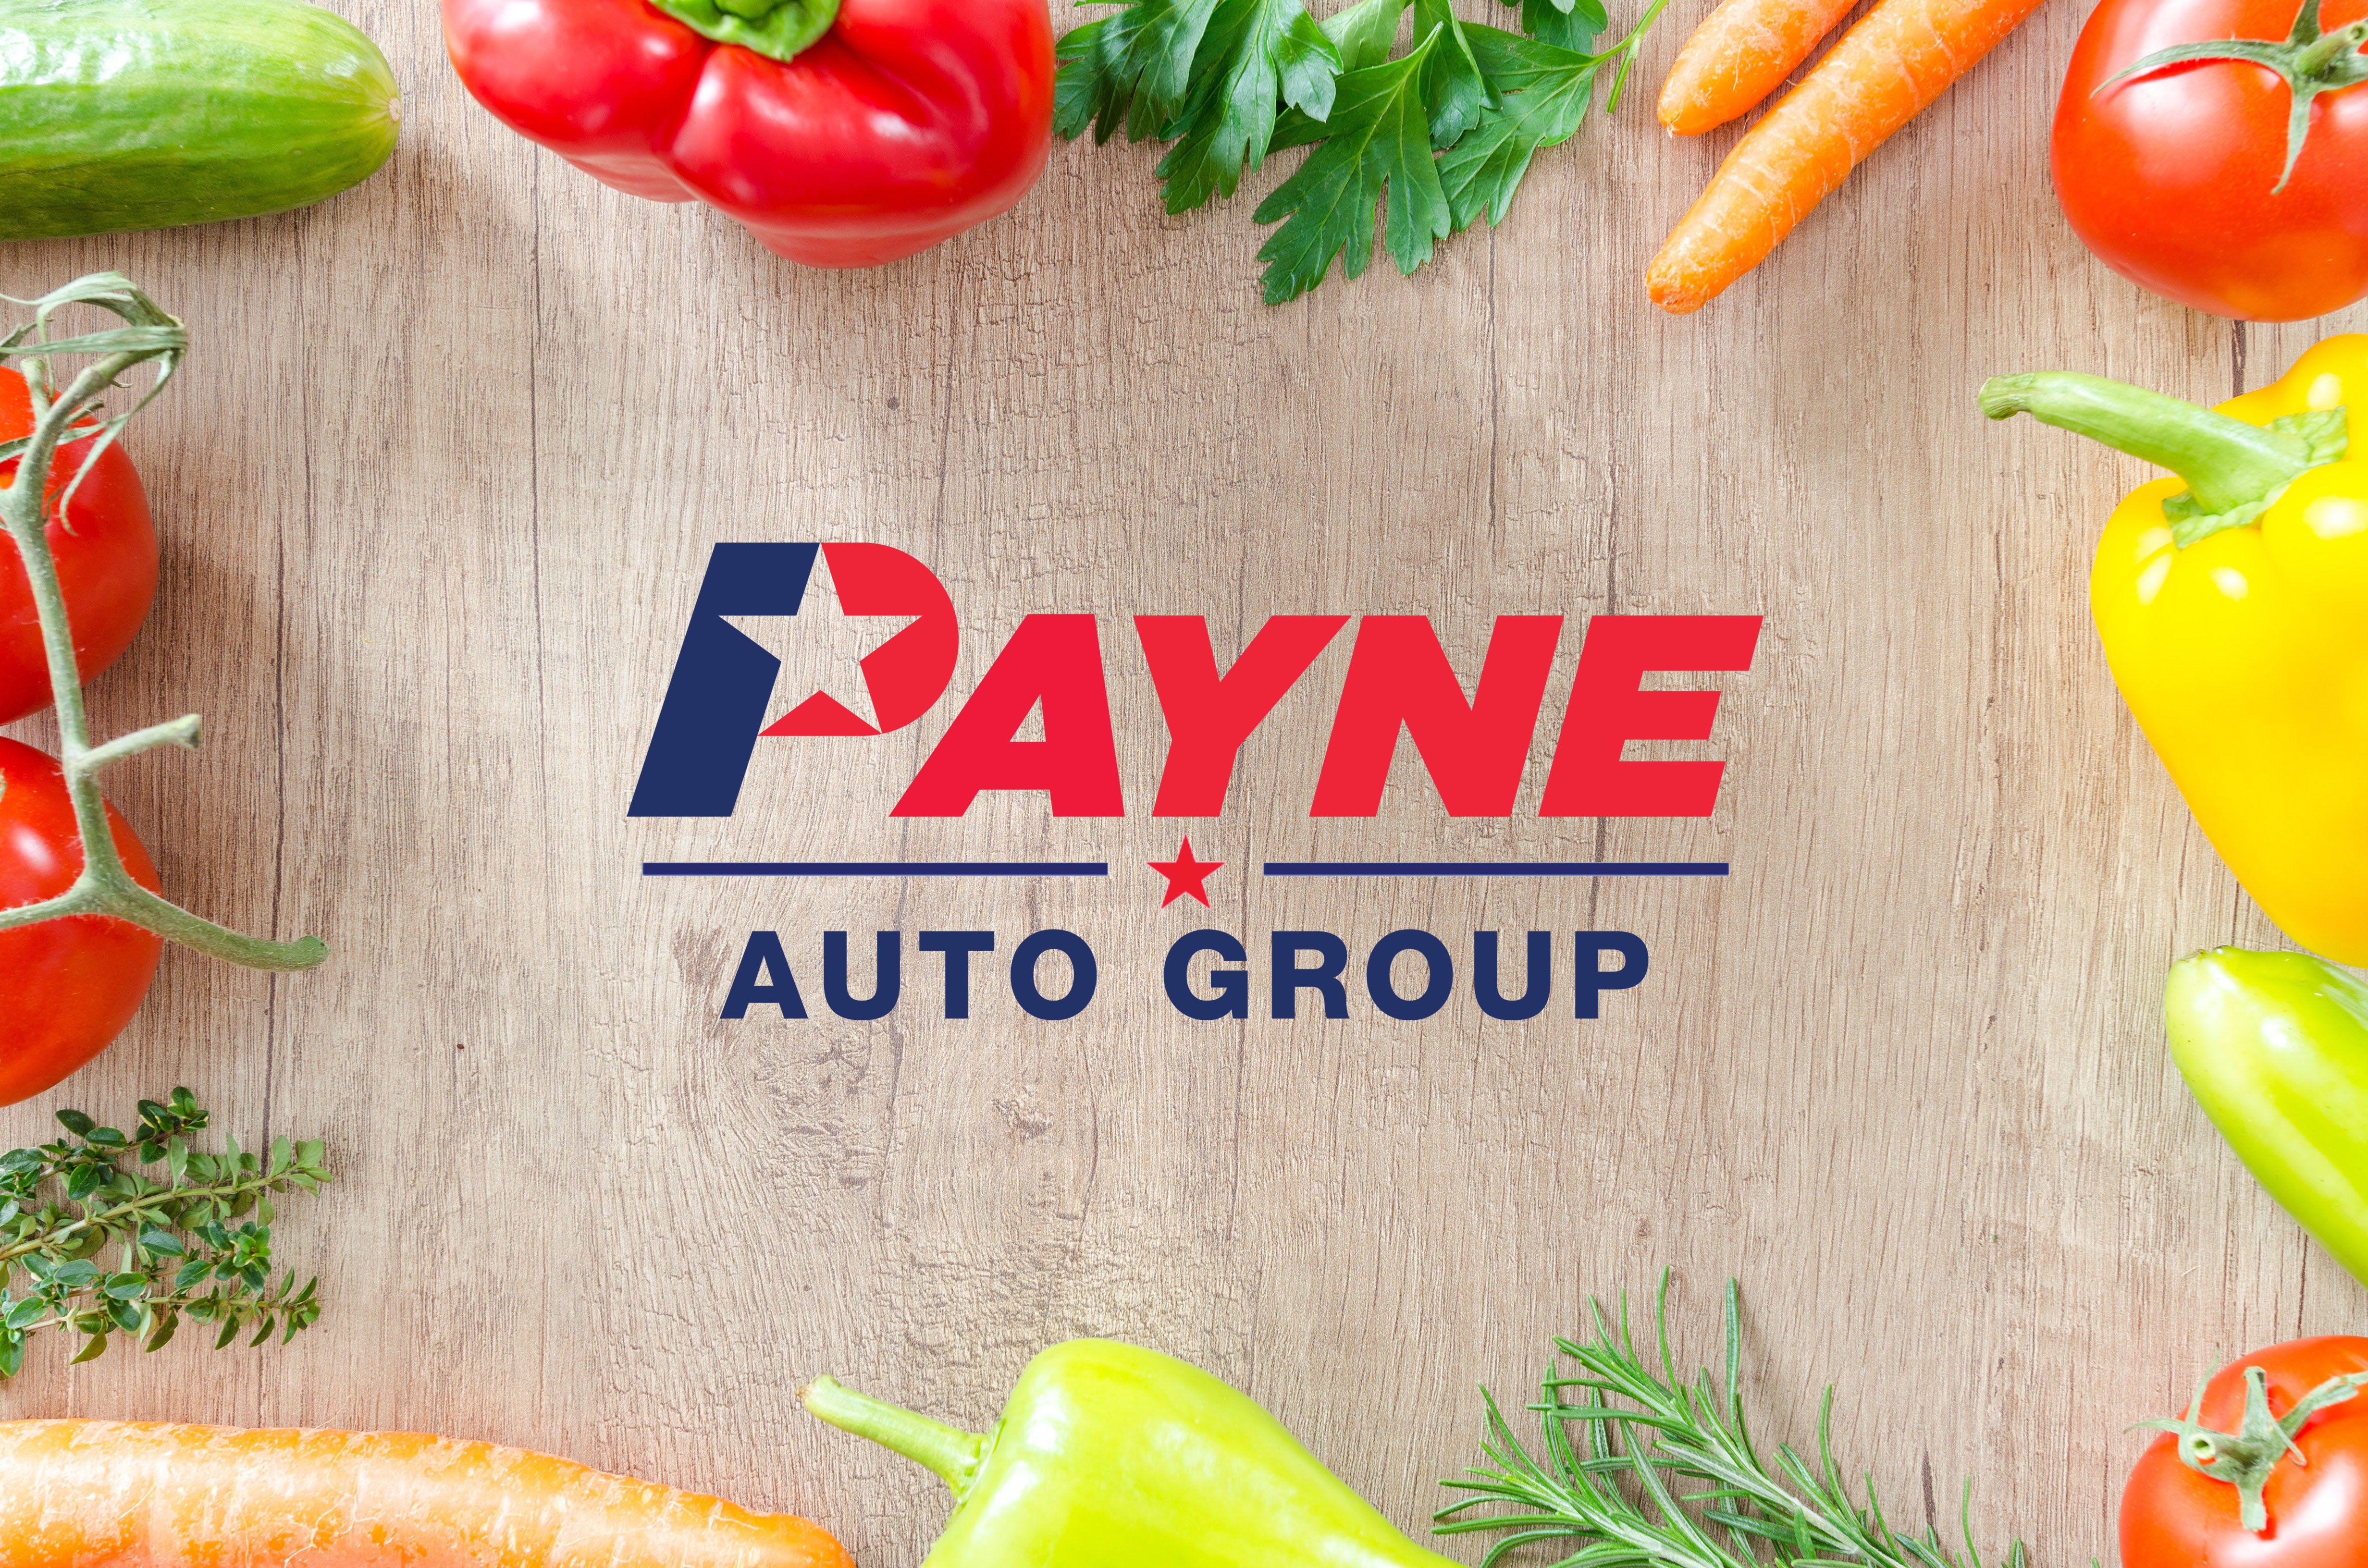 Payne Auto Group Supports the Farm Dinner